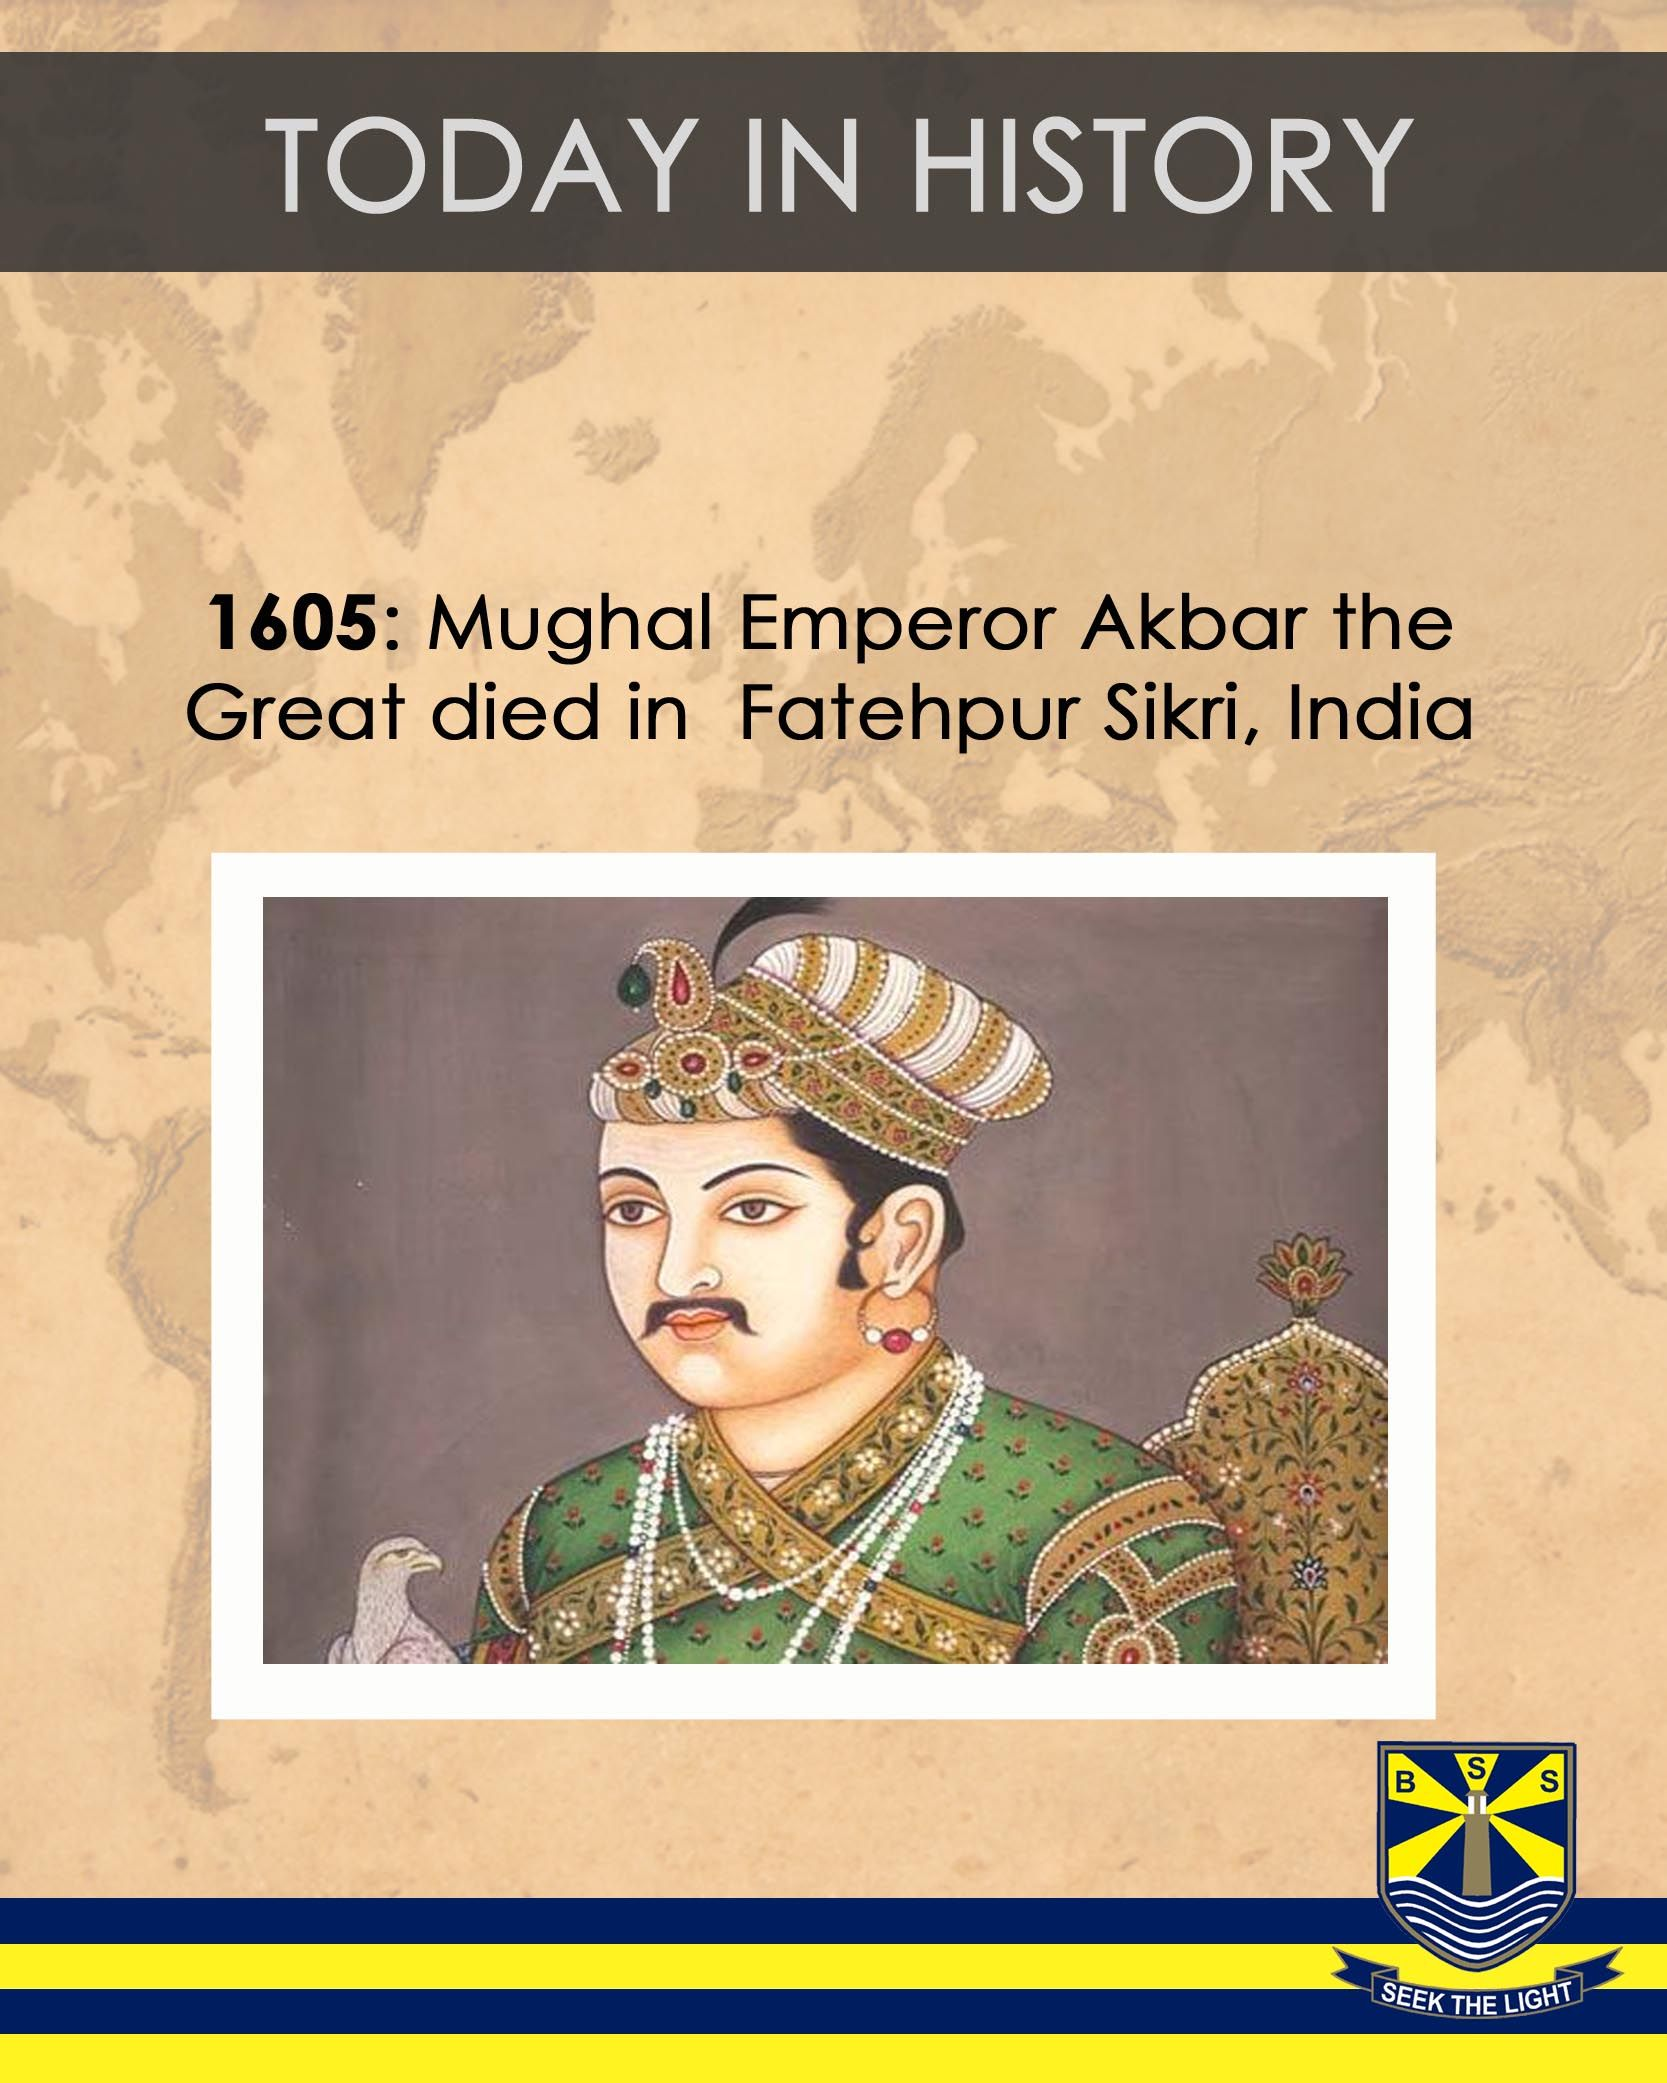 munim khan khan i khanan was a mughal general under both emperors todayinhistory 1605 mughal emperor akbar the great died in fatehpur sikri